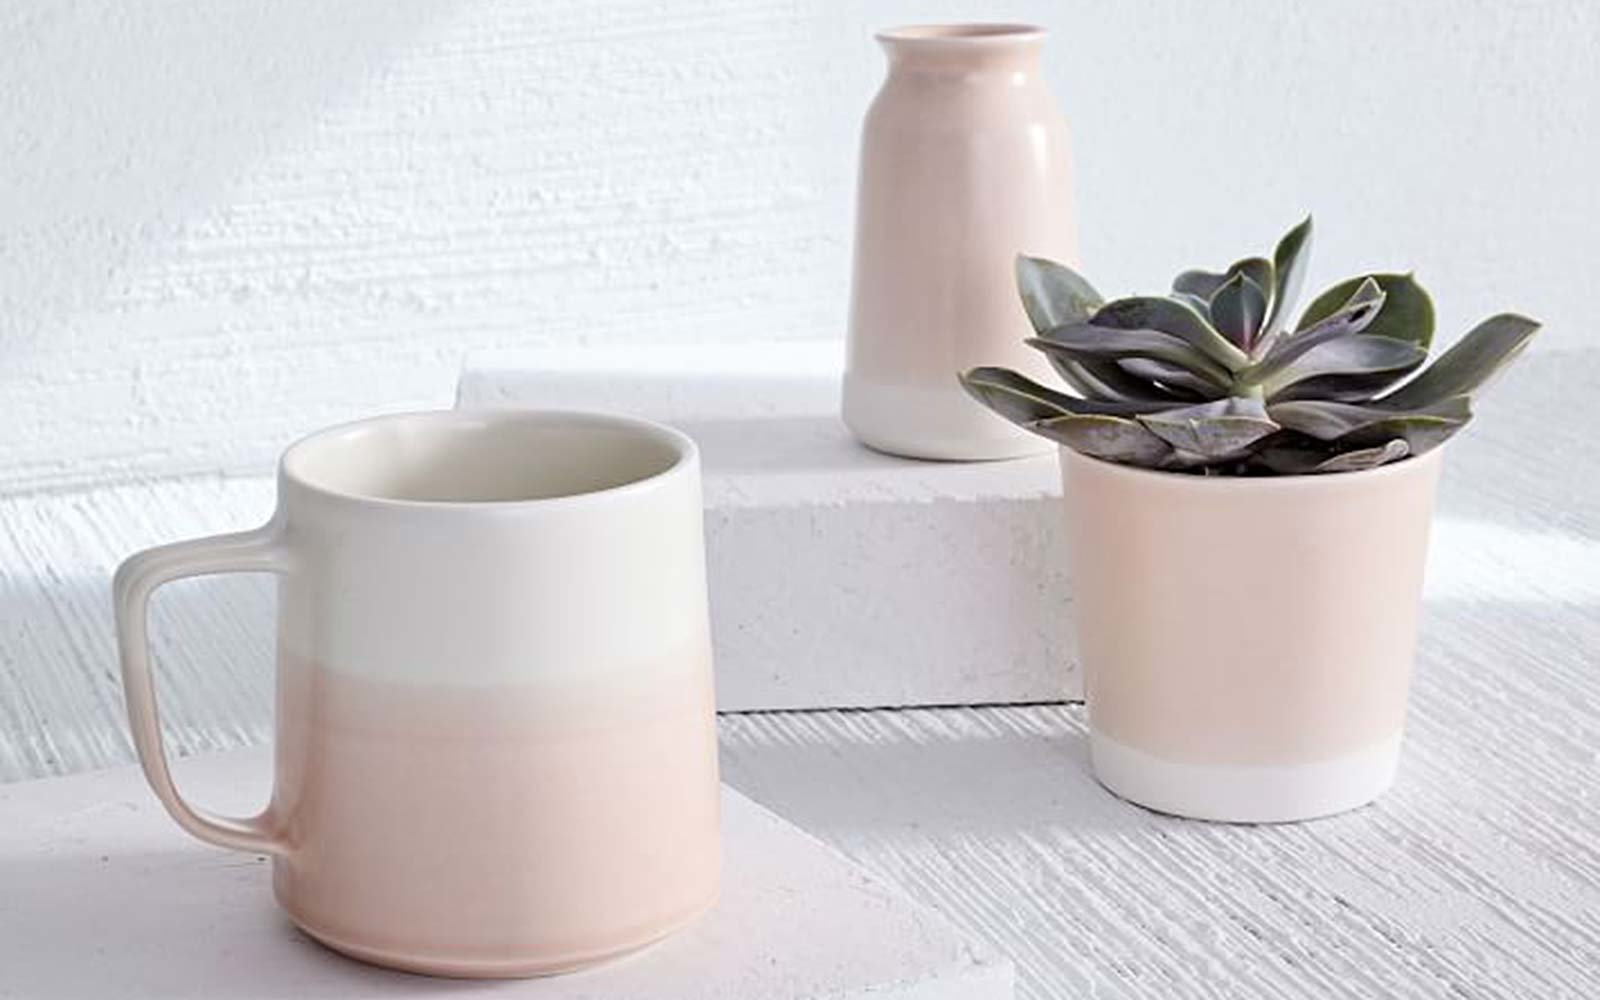 Paper & Clay Mug, Vase, and Planter